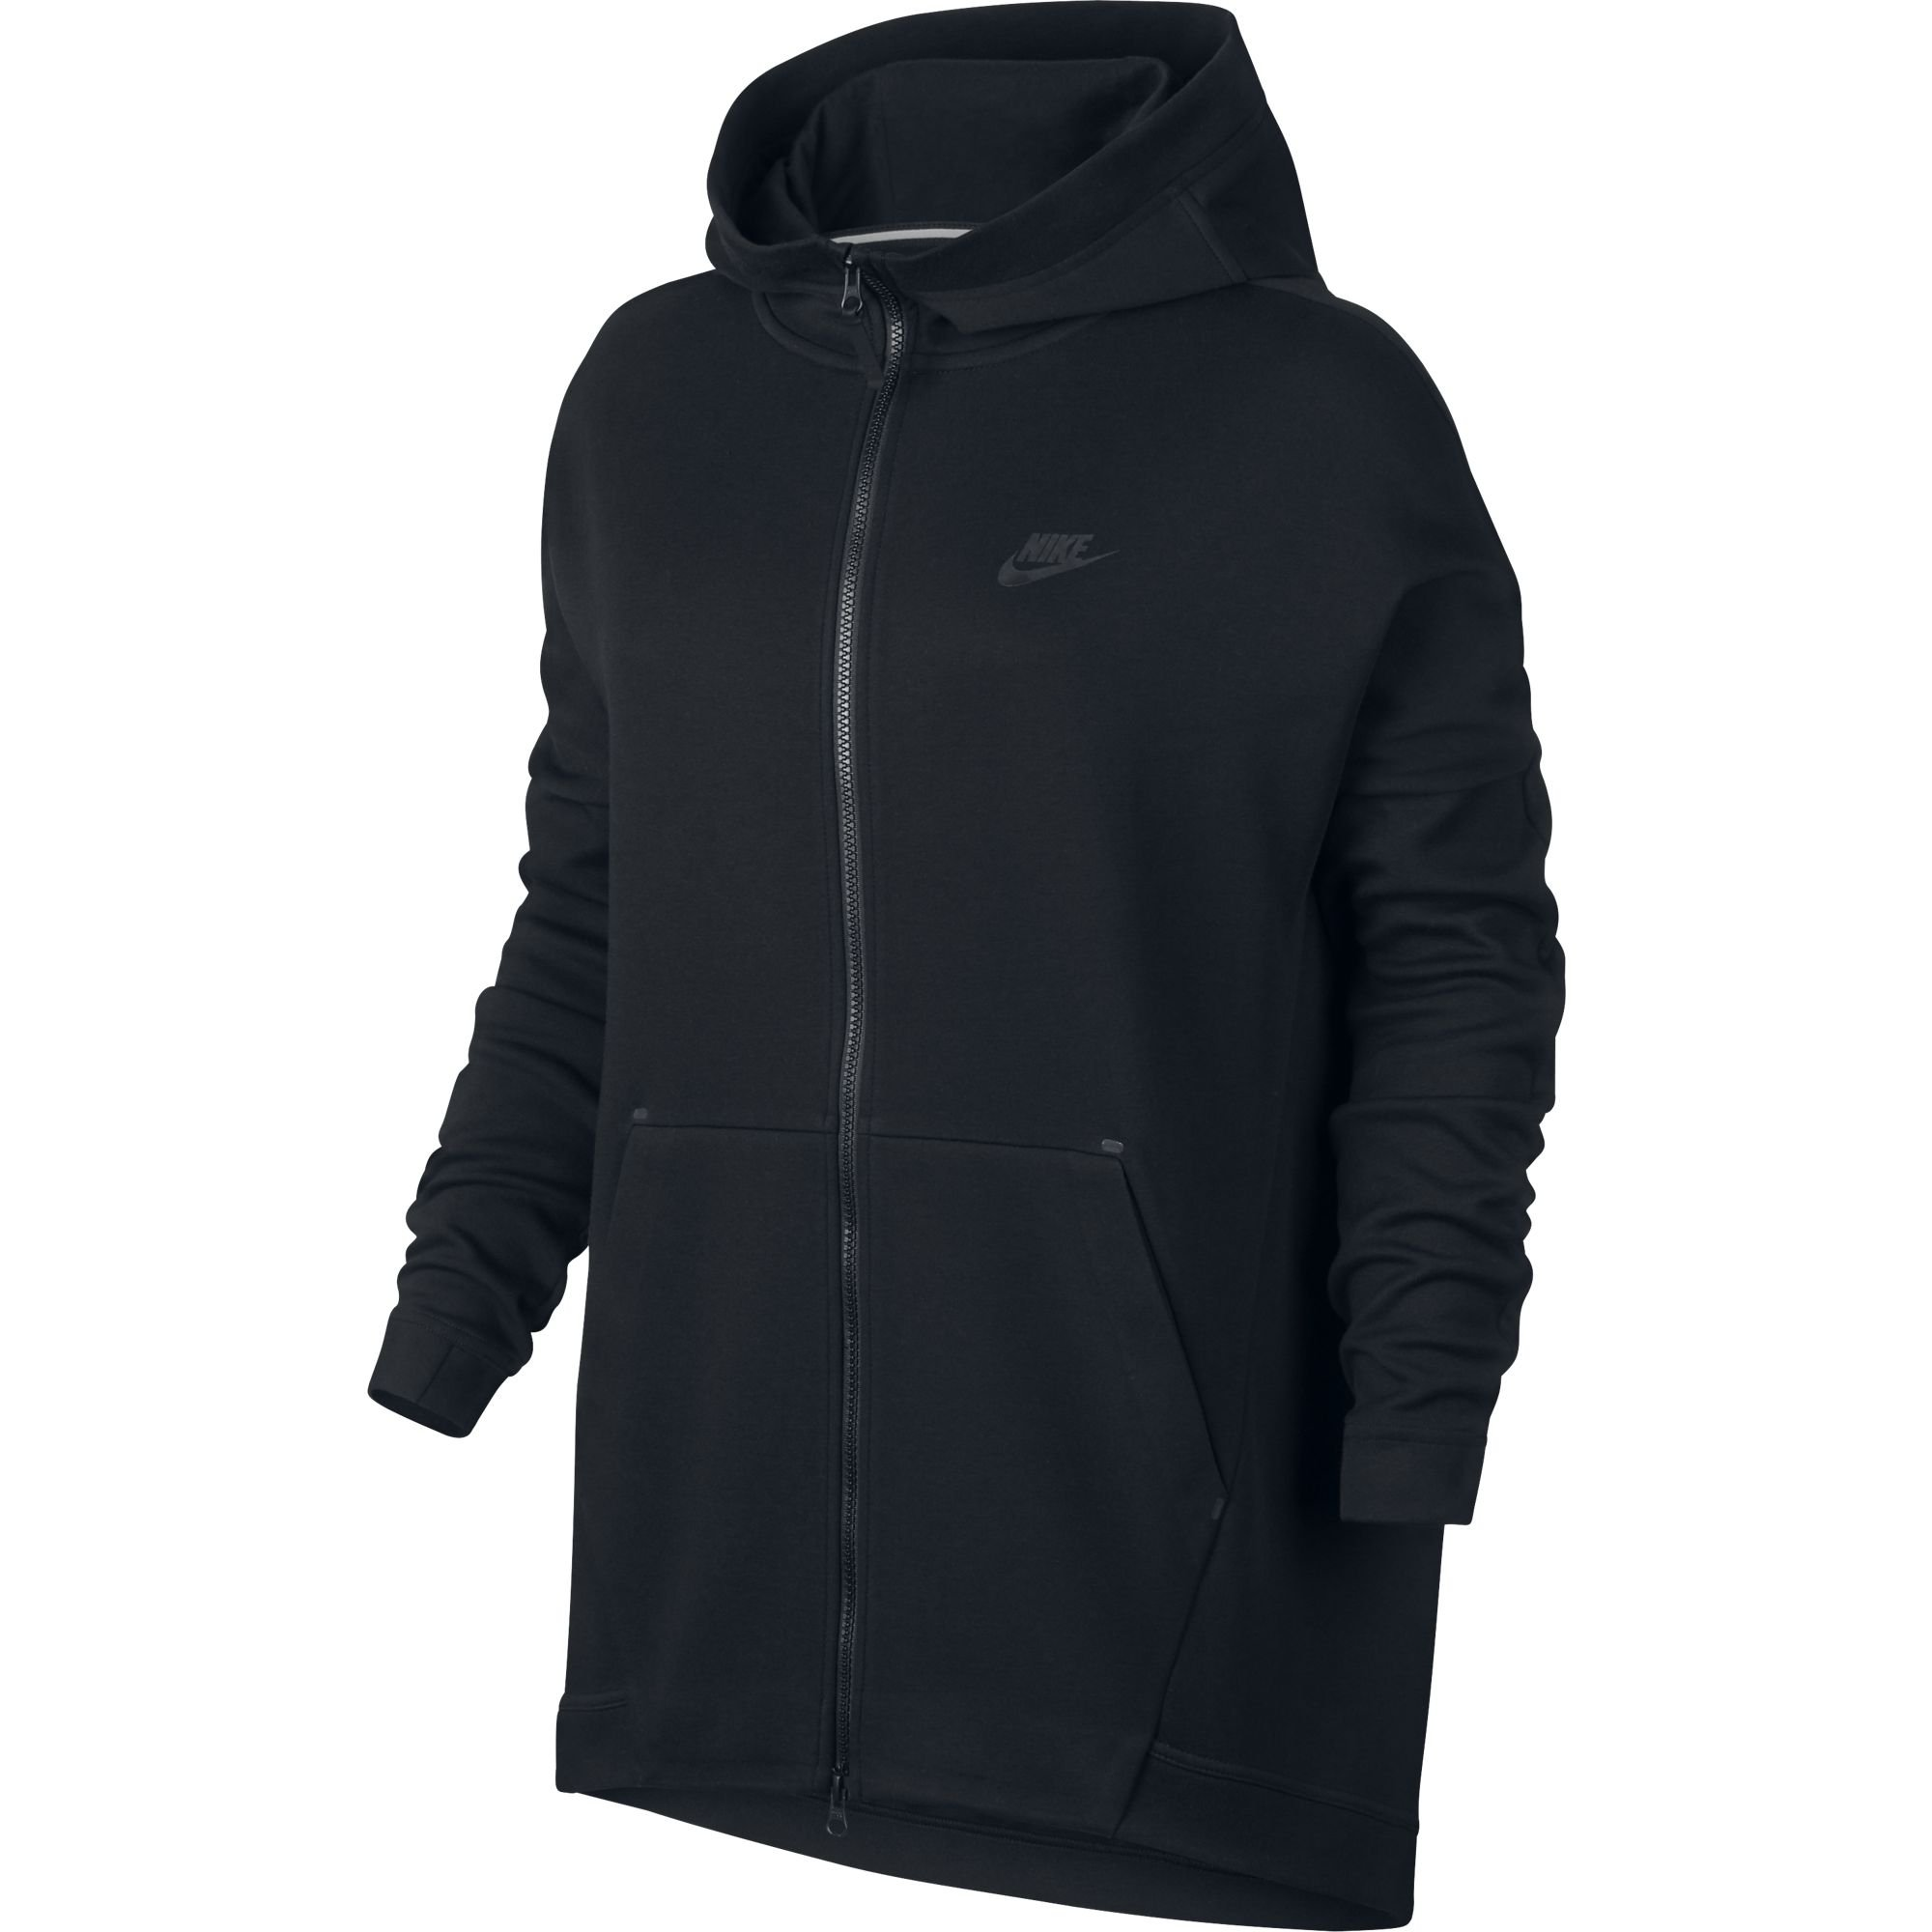 Nike Sportswear Tech Fleece Cape Womens Jacket (Medium)